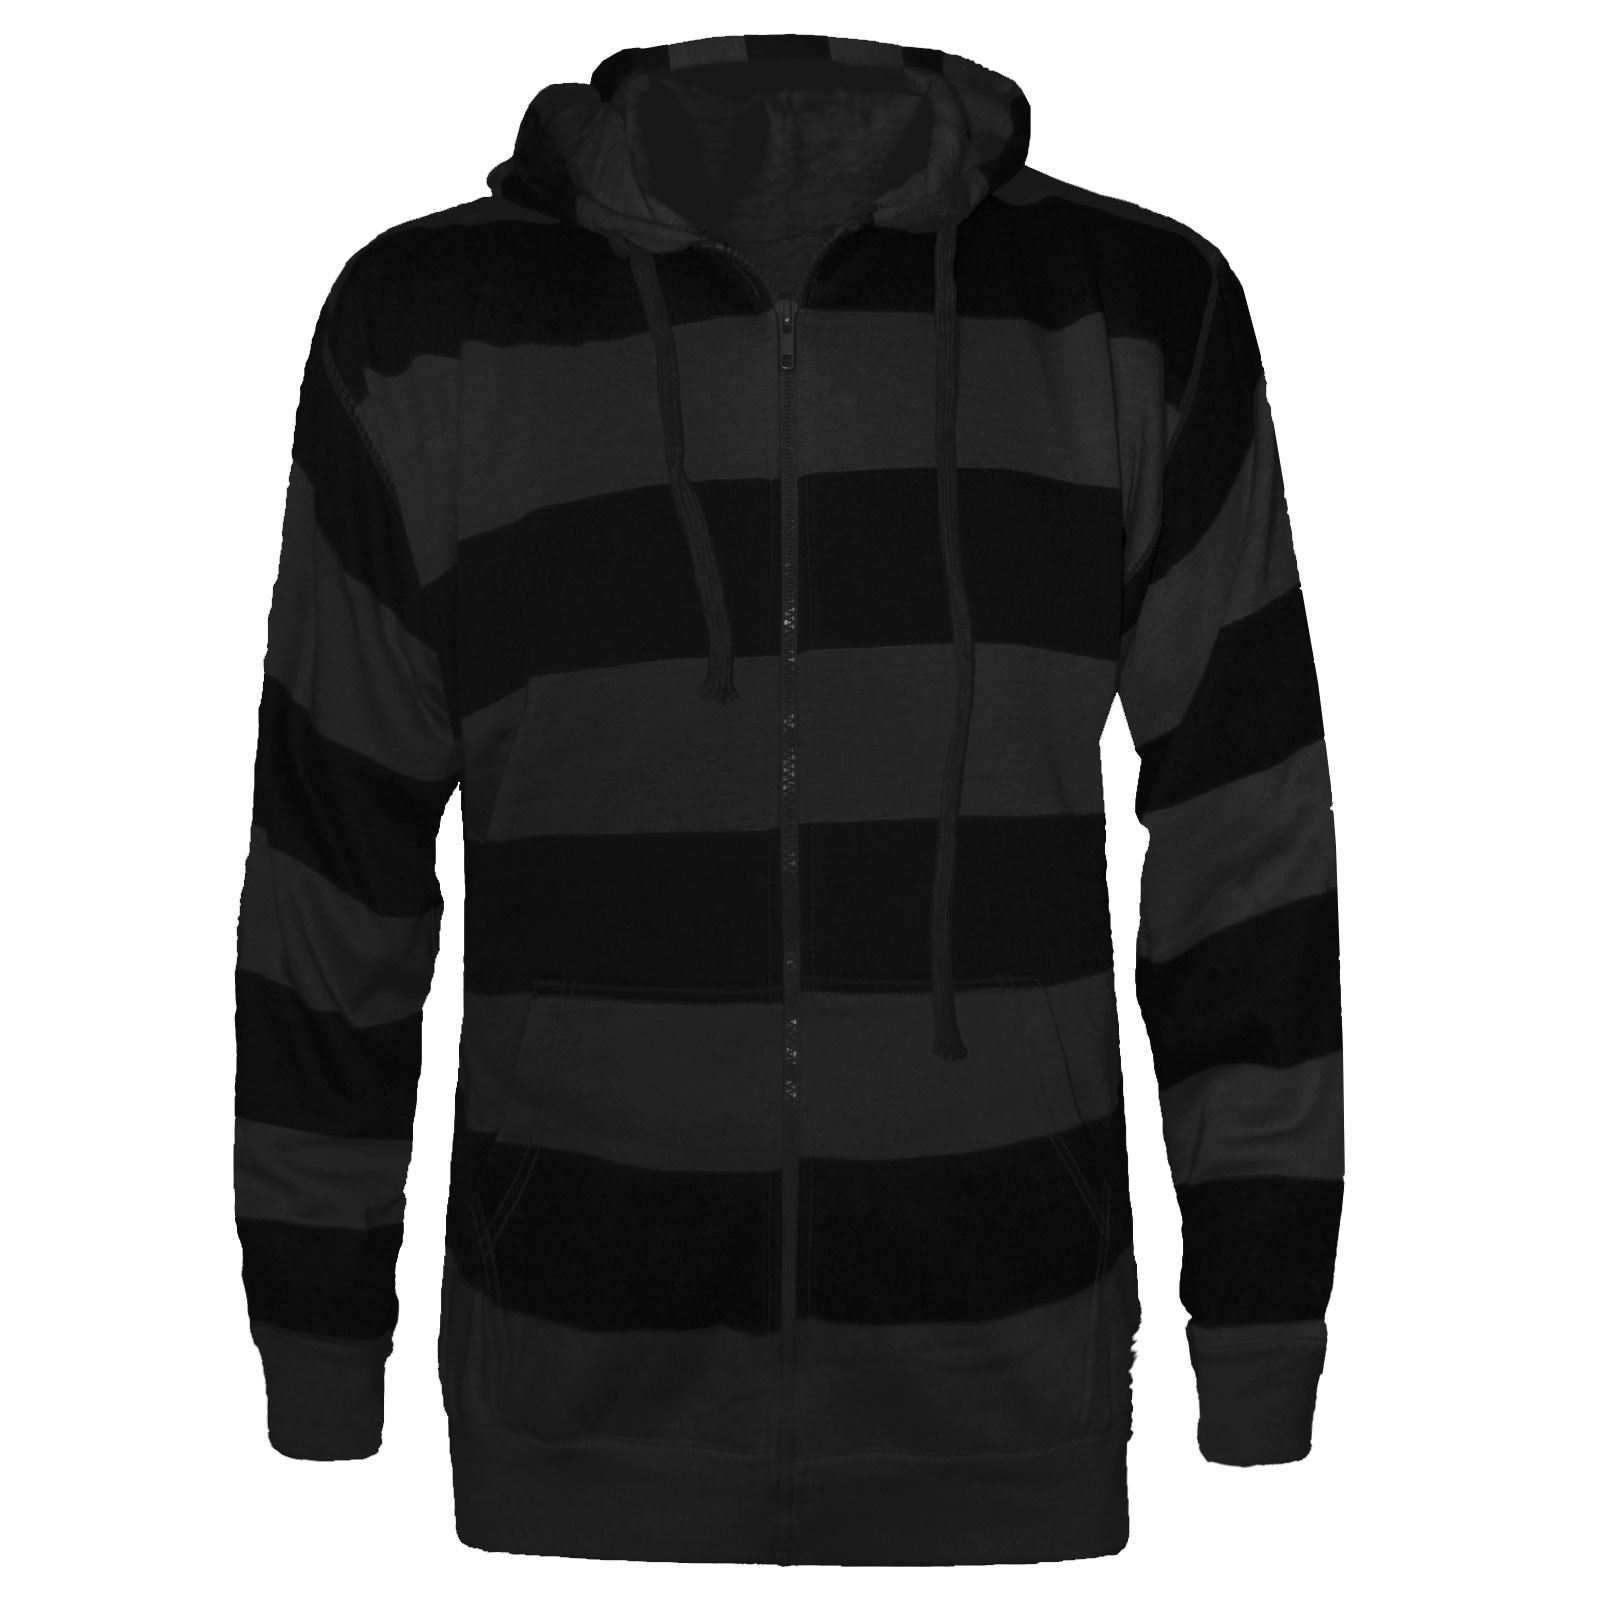 Find great deals on eBay for animal print zip up hoodie. Shop with confidence.